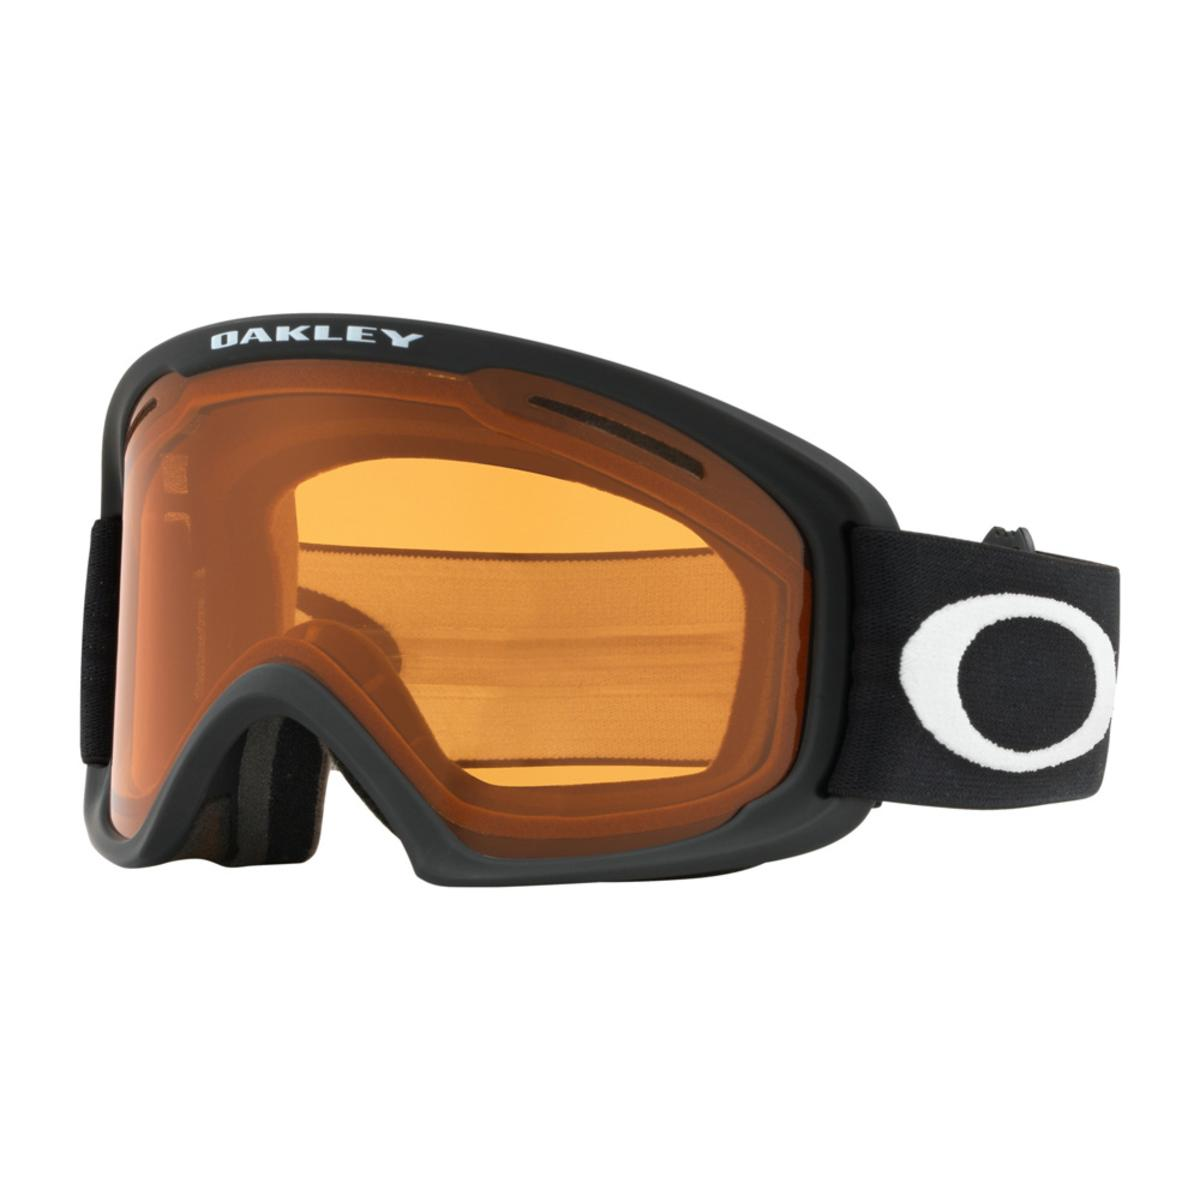 7806c7e5c6 Oakley O Frame 2.0 XL Matte Black Snow Goggle w Persimmon - The Warming  Store